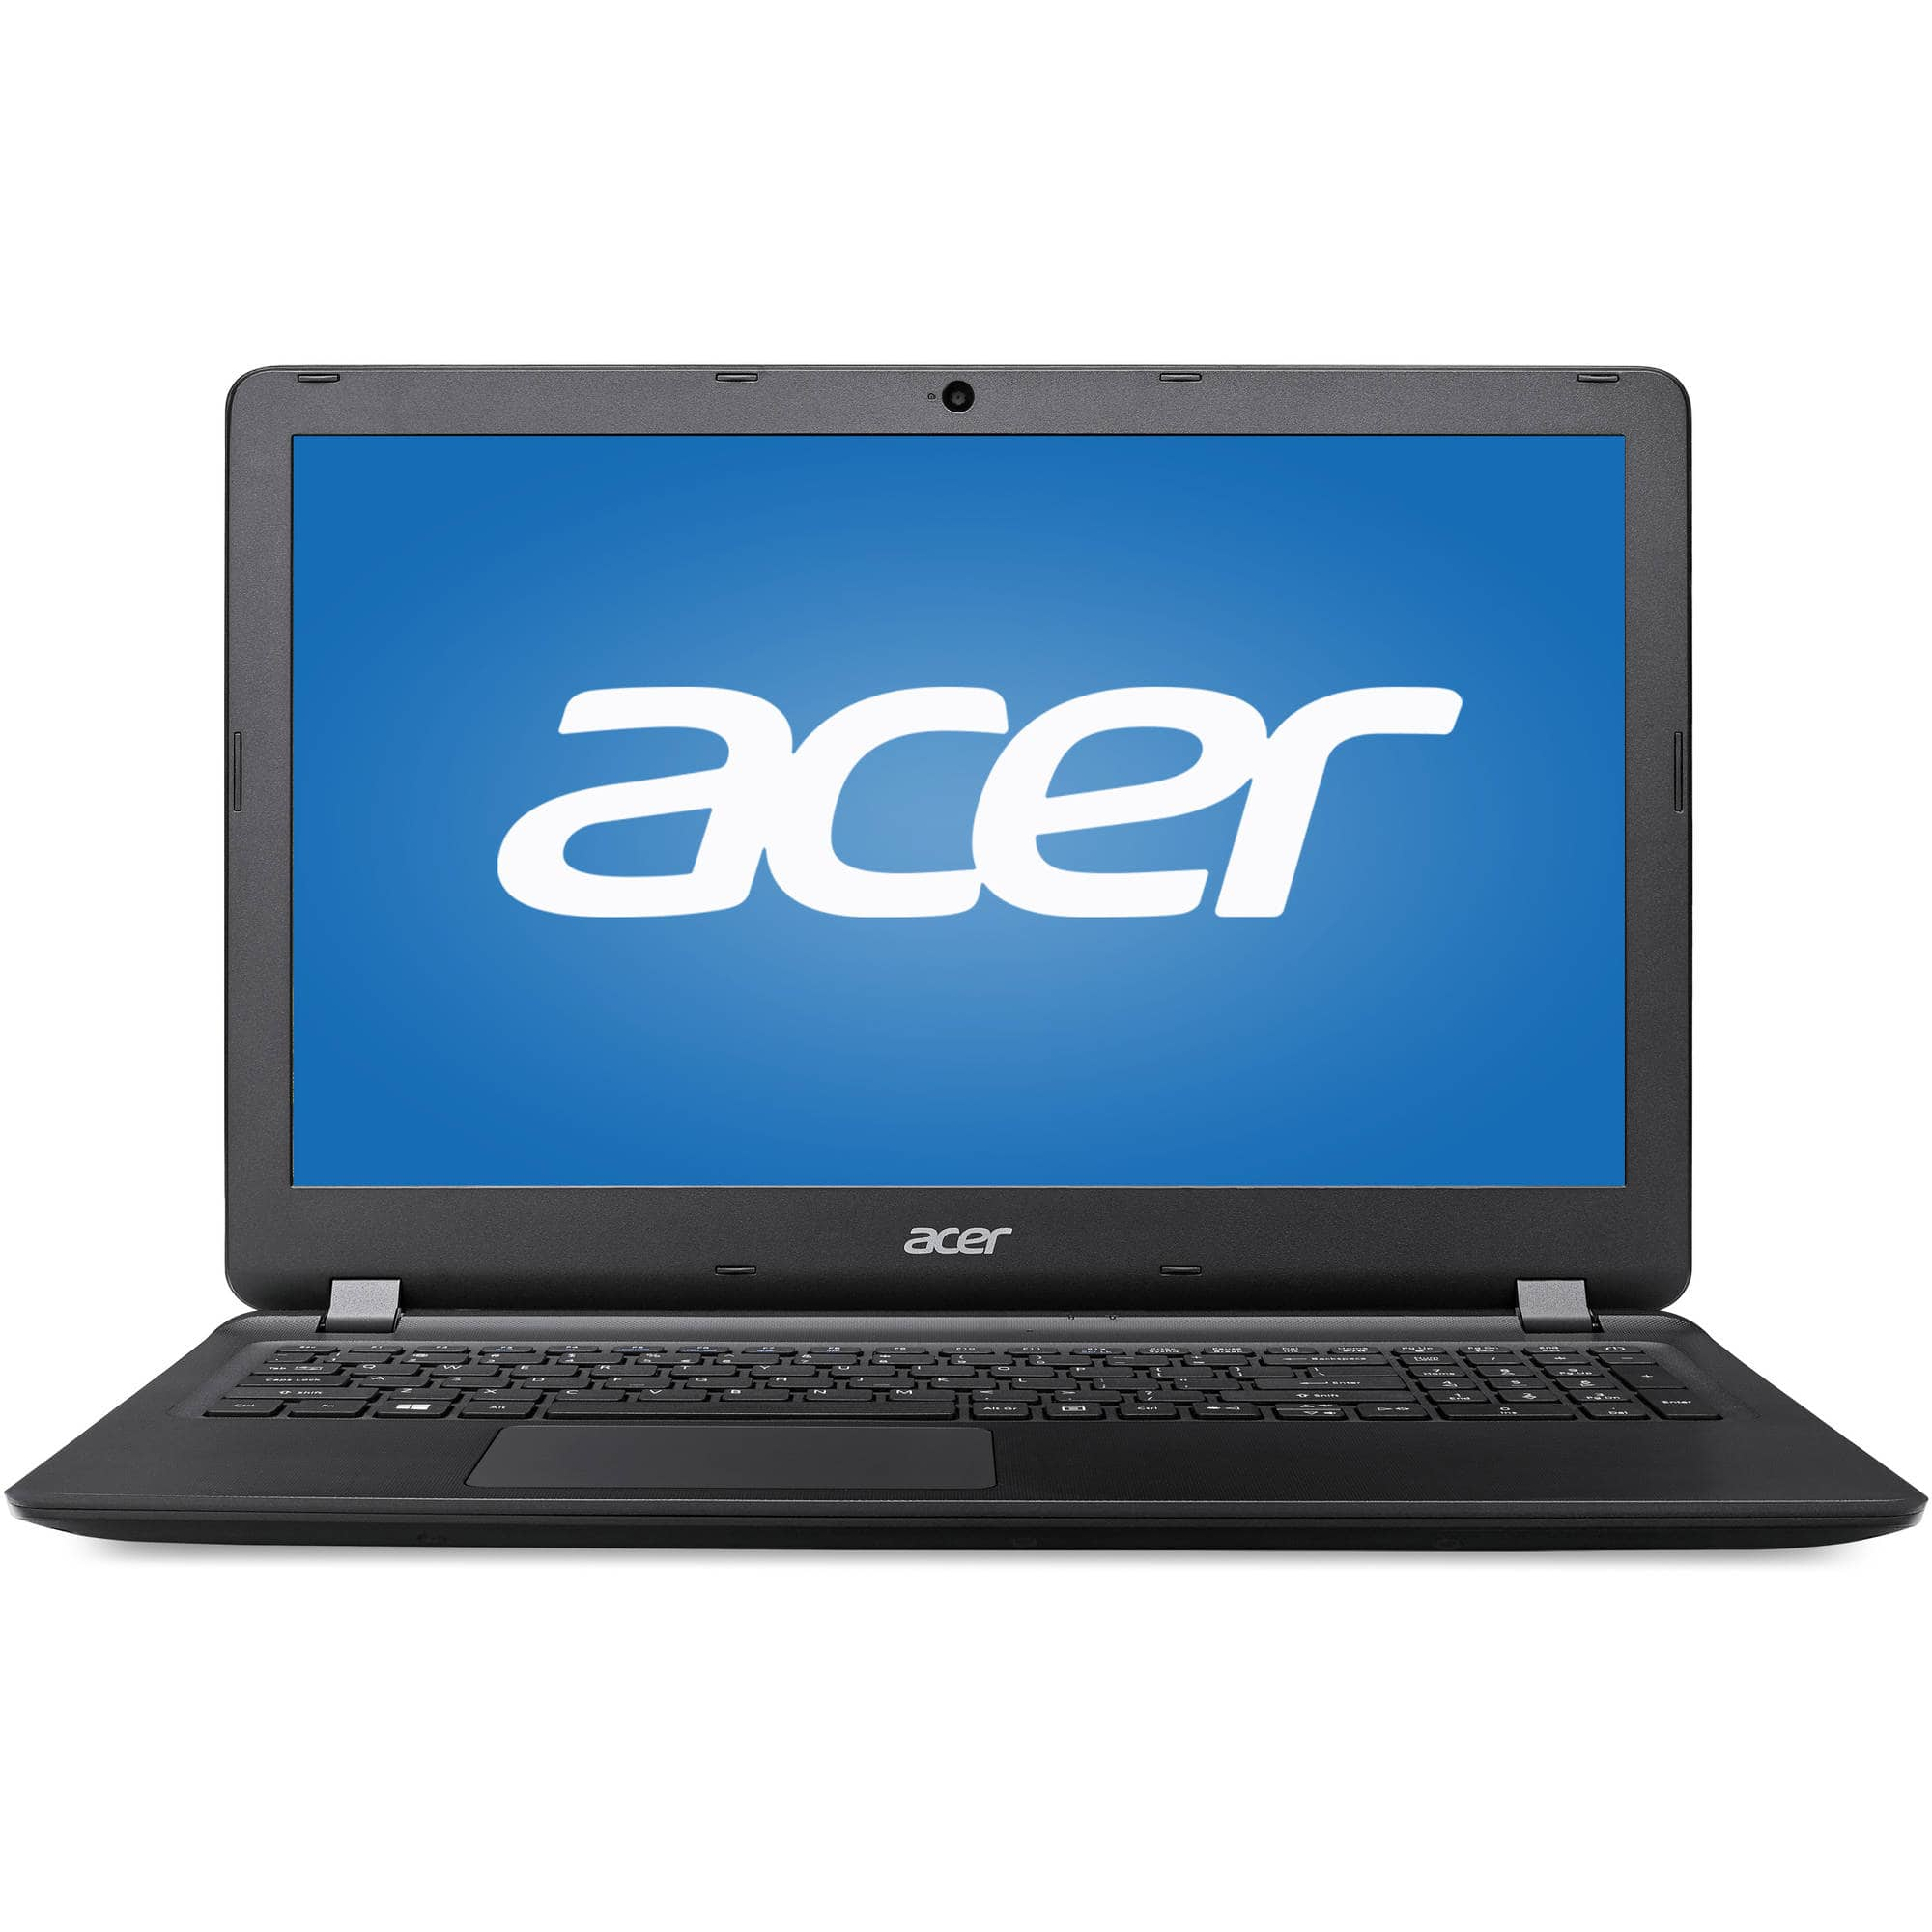 """Acer Aspire ES1-572-31XL 15.6"""" 768P, i3-6100U, 4GB Ram, 1TB HDD, WiFi AC,DVD-RW, WIn10 Home @ $279 with F/S"""